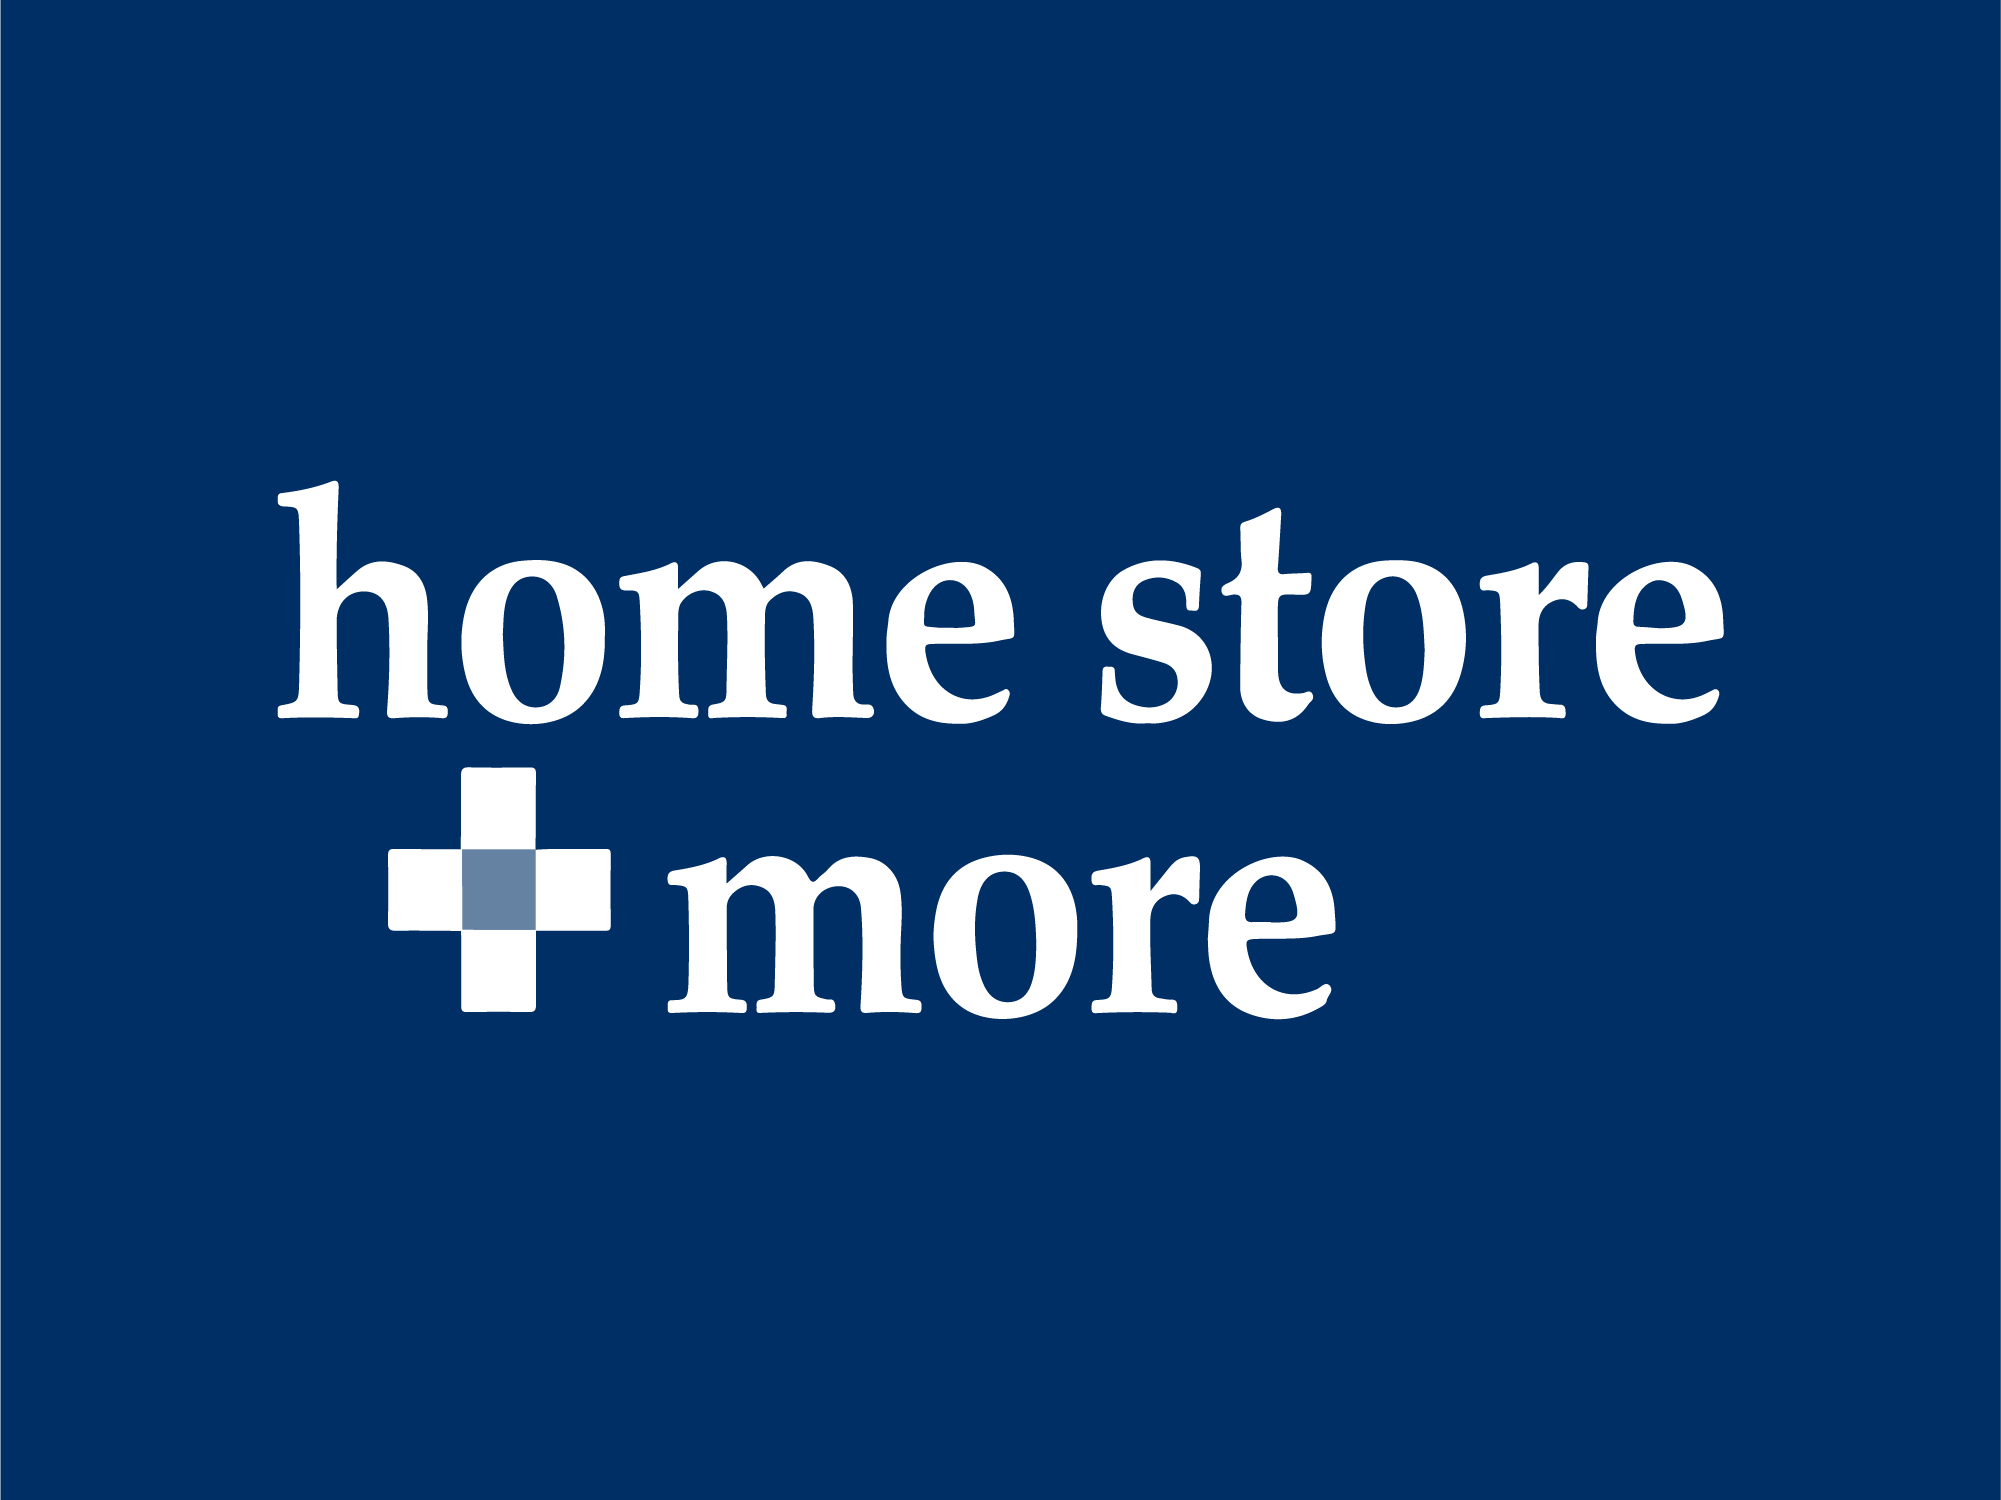 Home Store + More - Advised on bank financing to fund the growth plan for the business